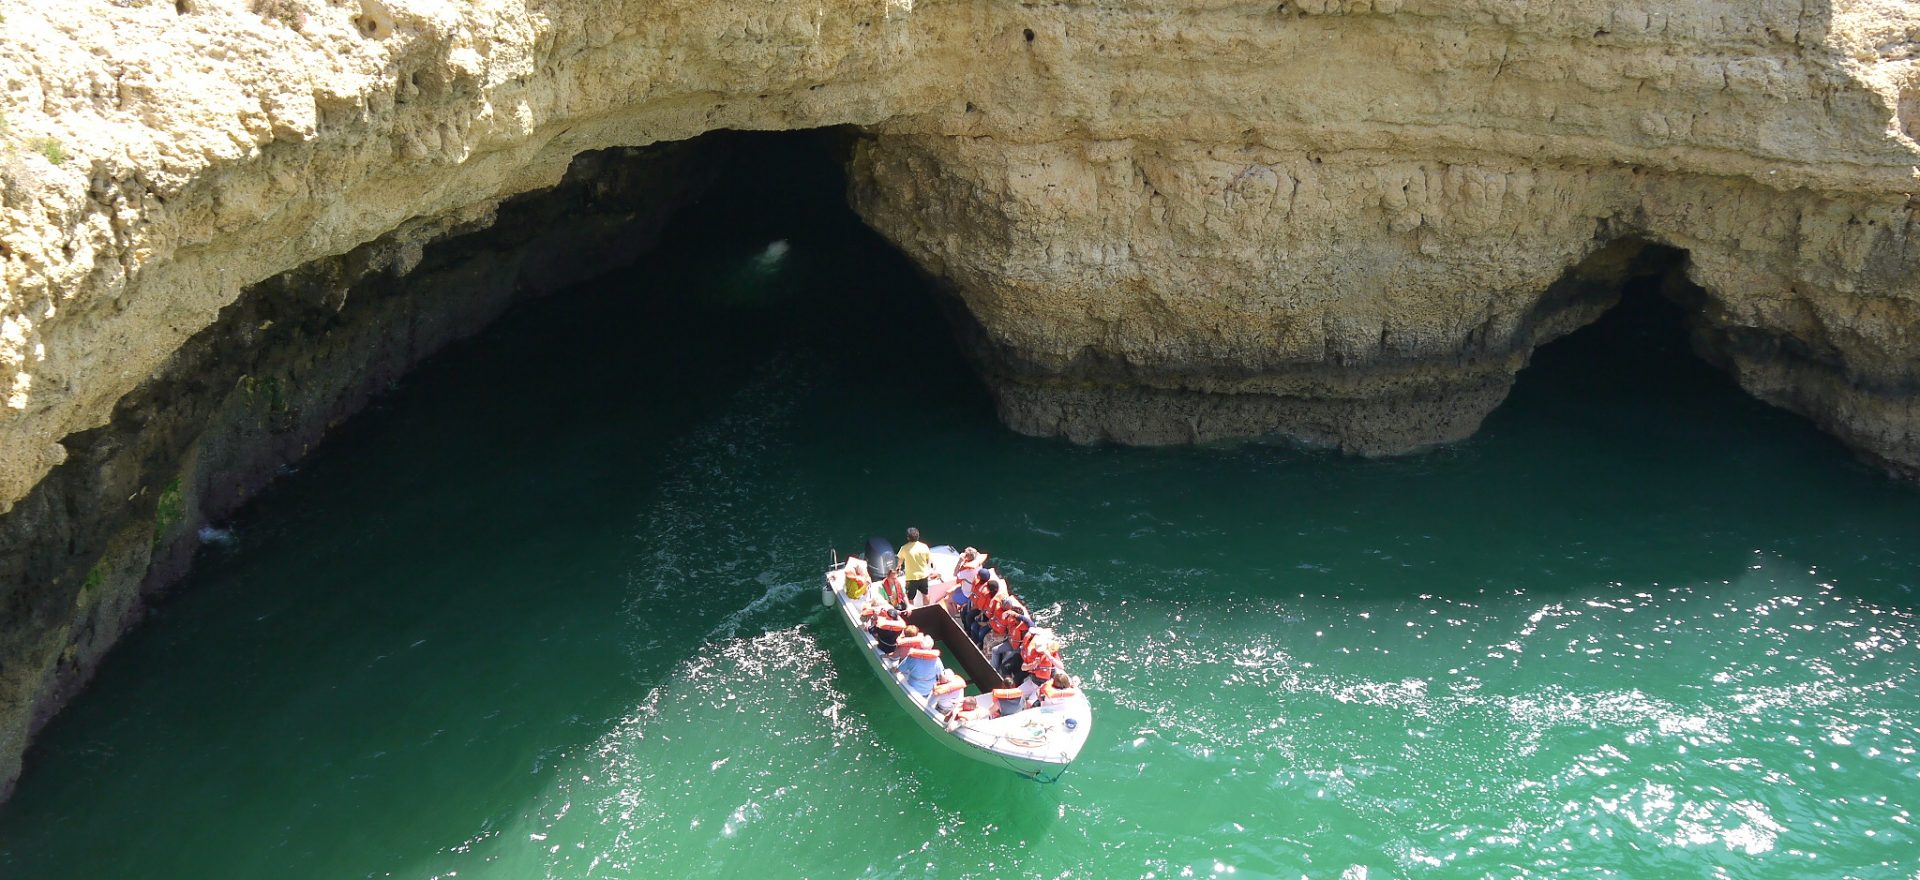 glass bottom boats trips to visit the albufeira caves